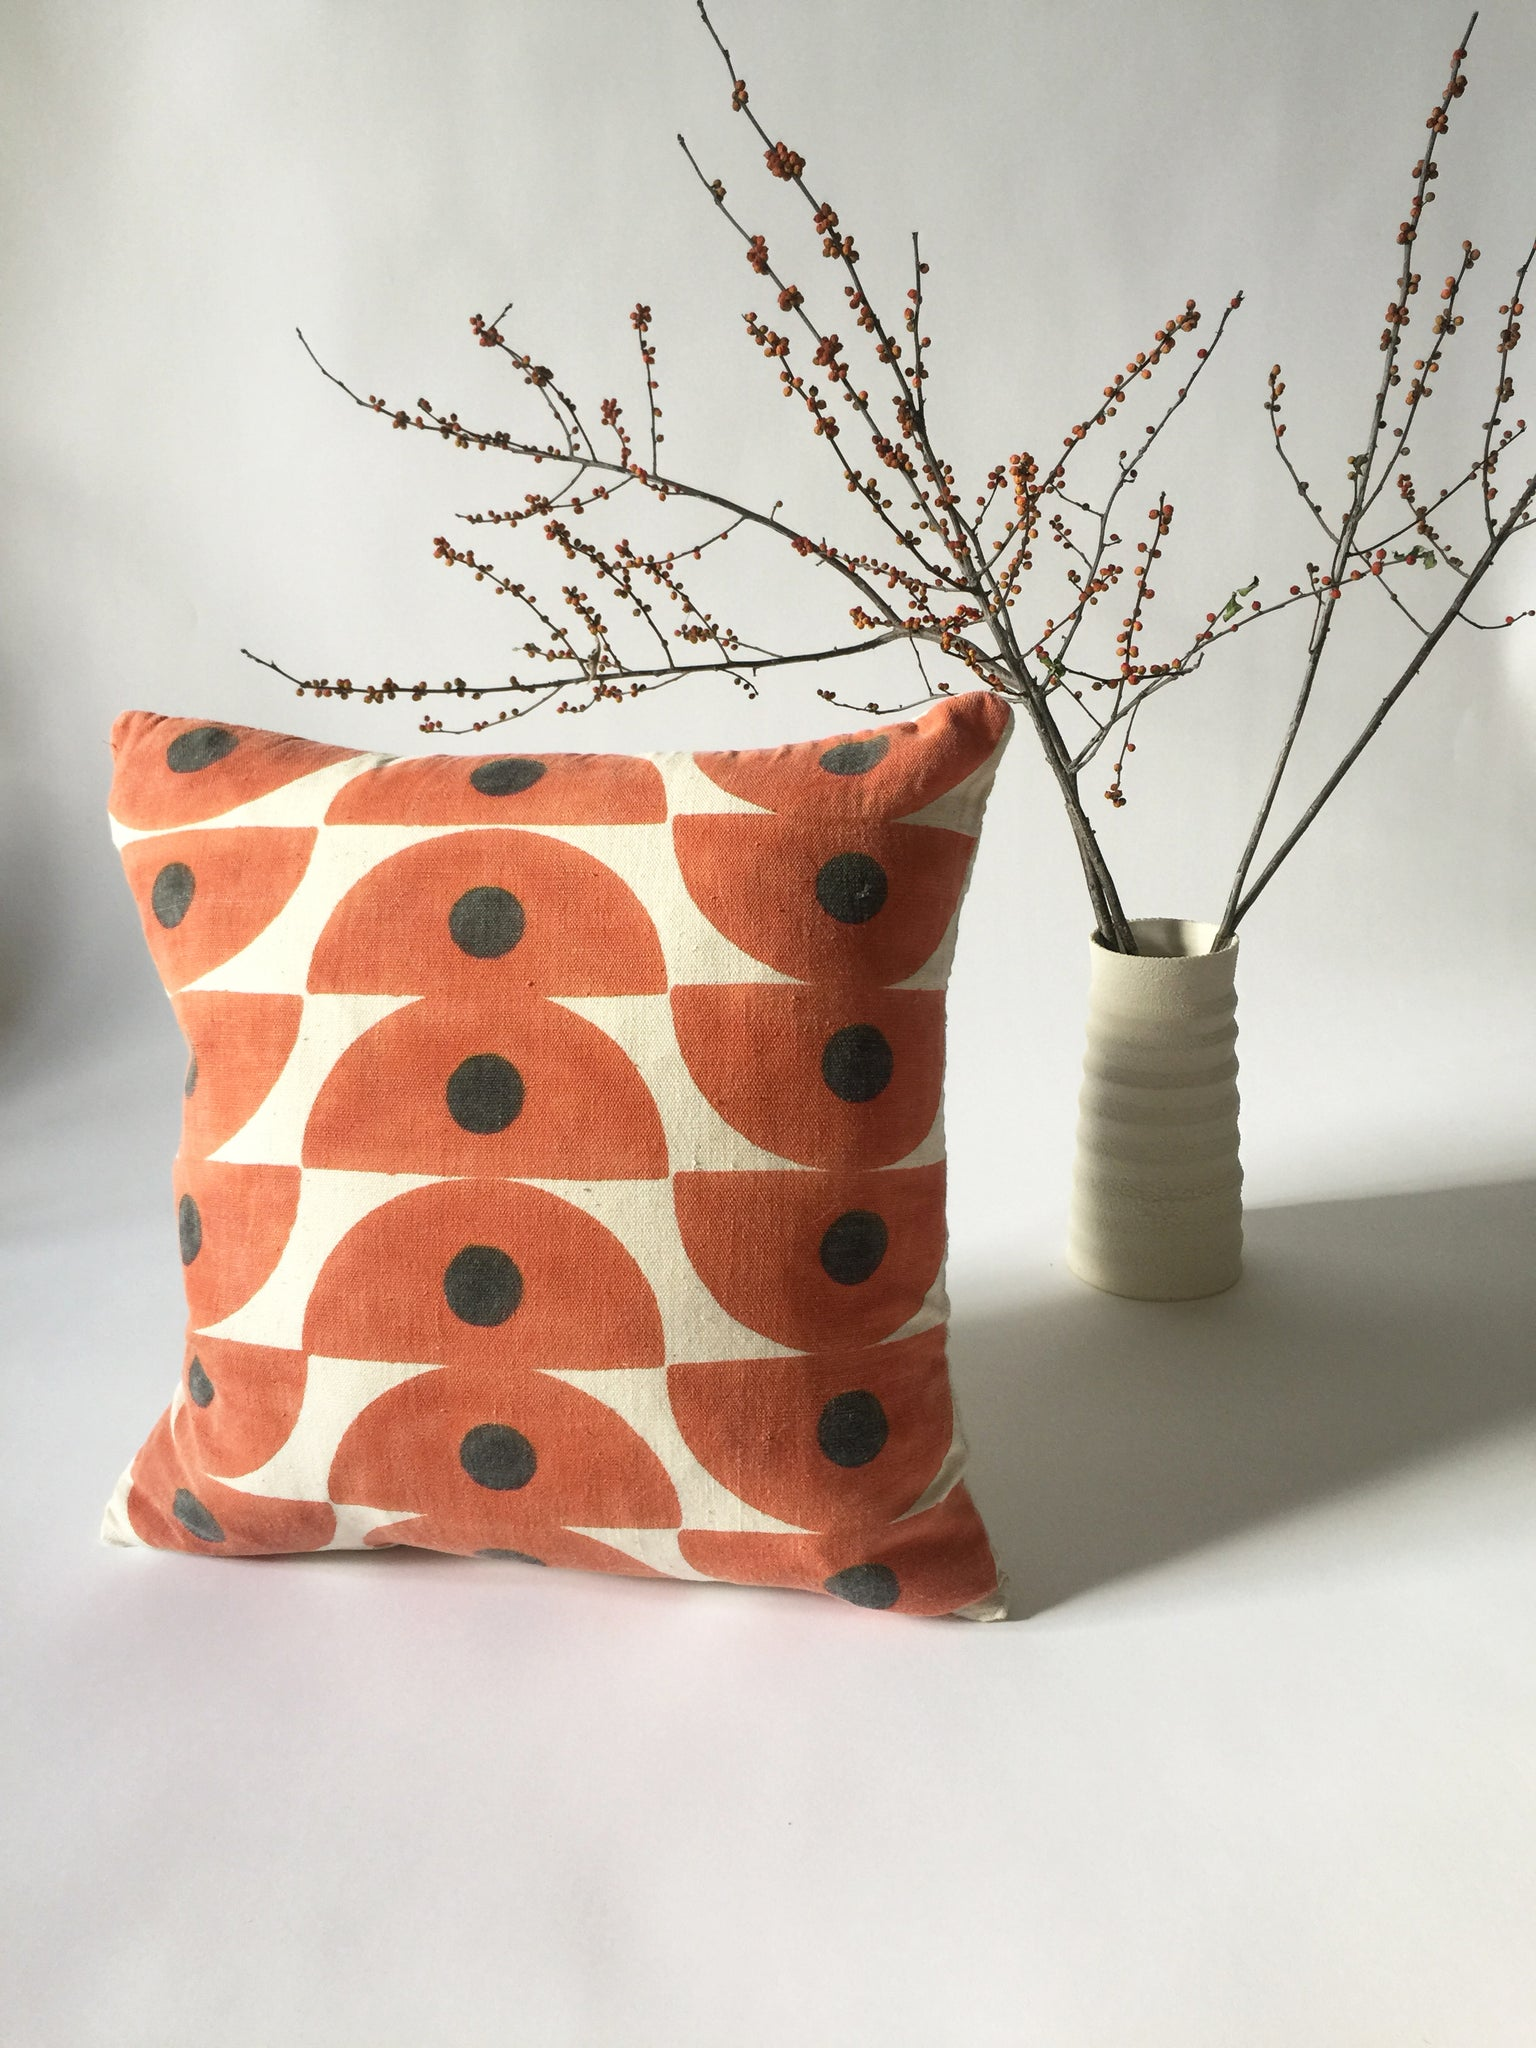 The perfect bright neutral pillow for any room. Hand block printed on hand spun, handwoven cotton. Ethically handmade in India.